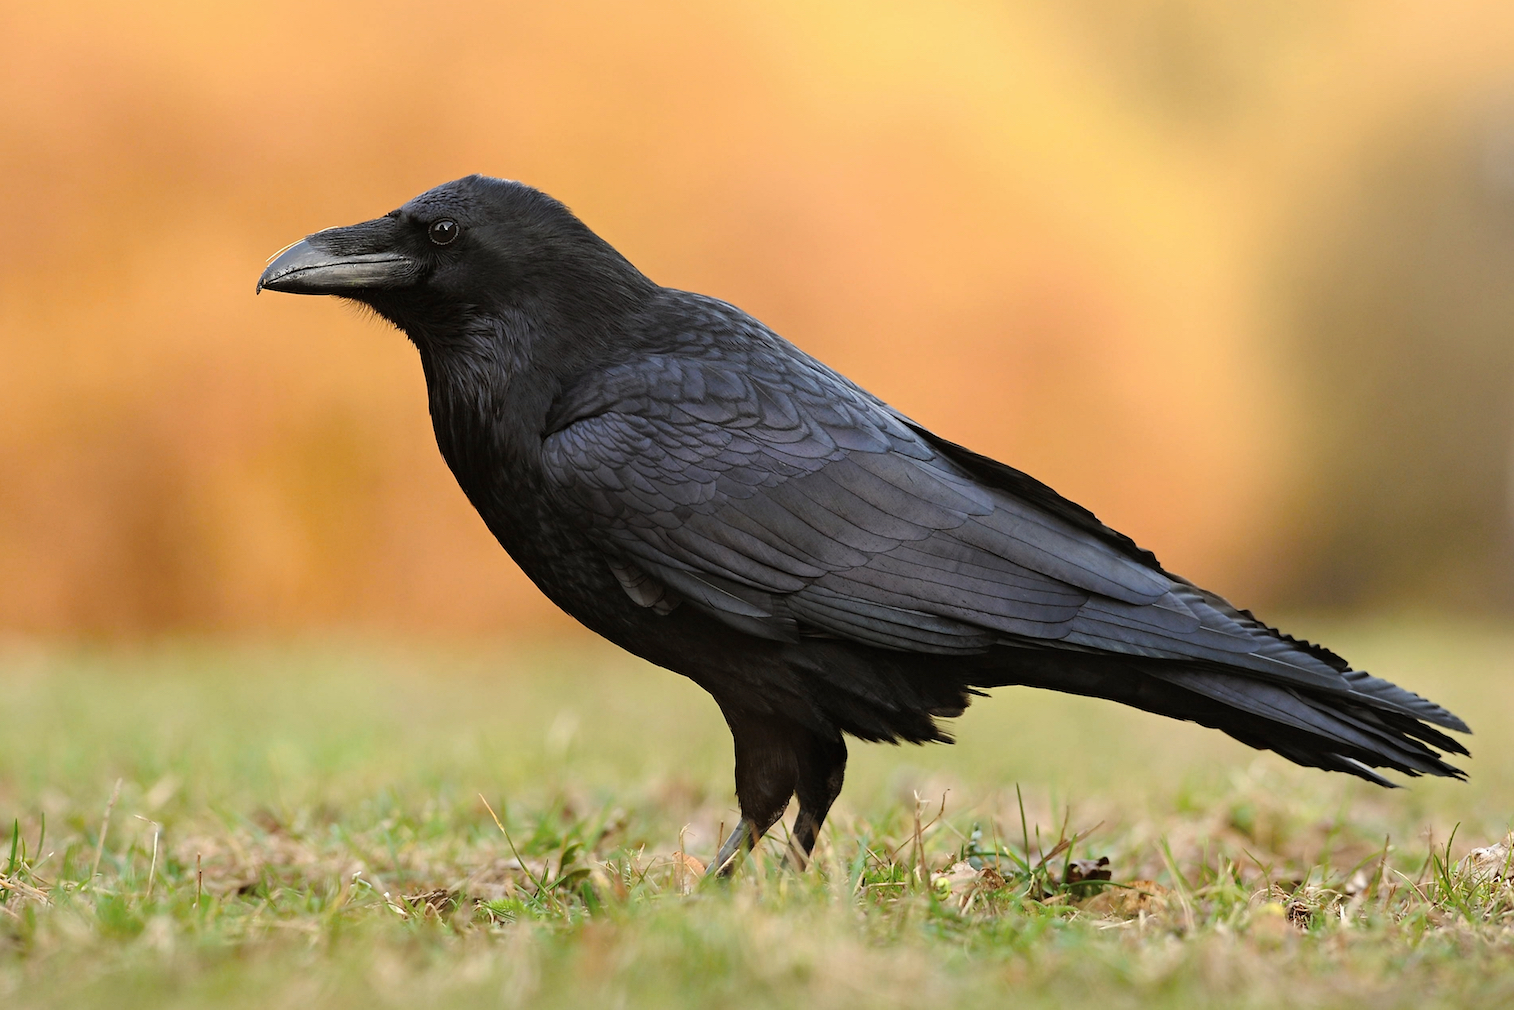 According to a new study, ravens have the ability to plan ahead for a greater reward versus an immediate, lesser reward.